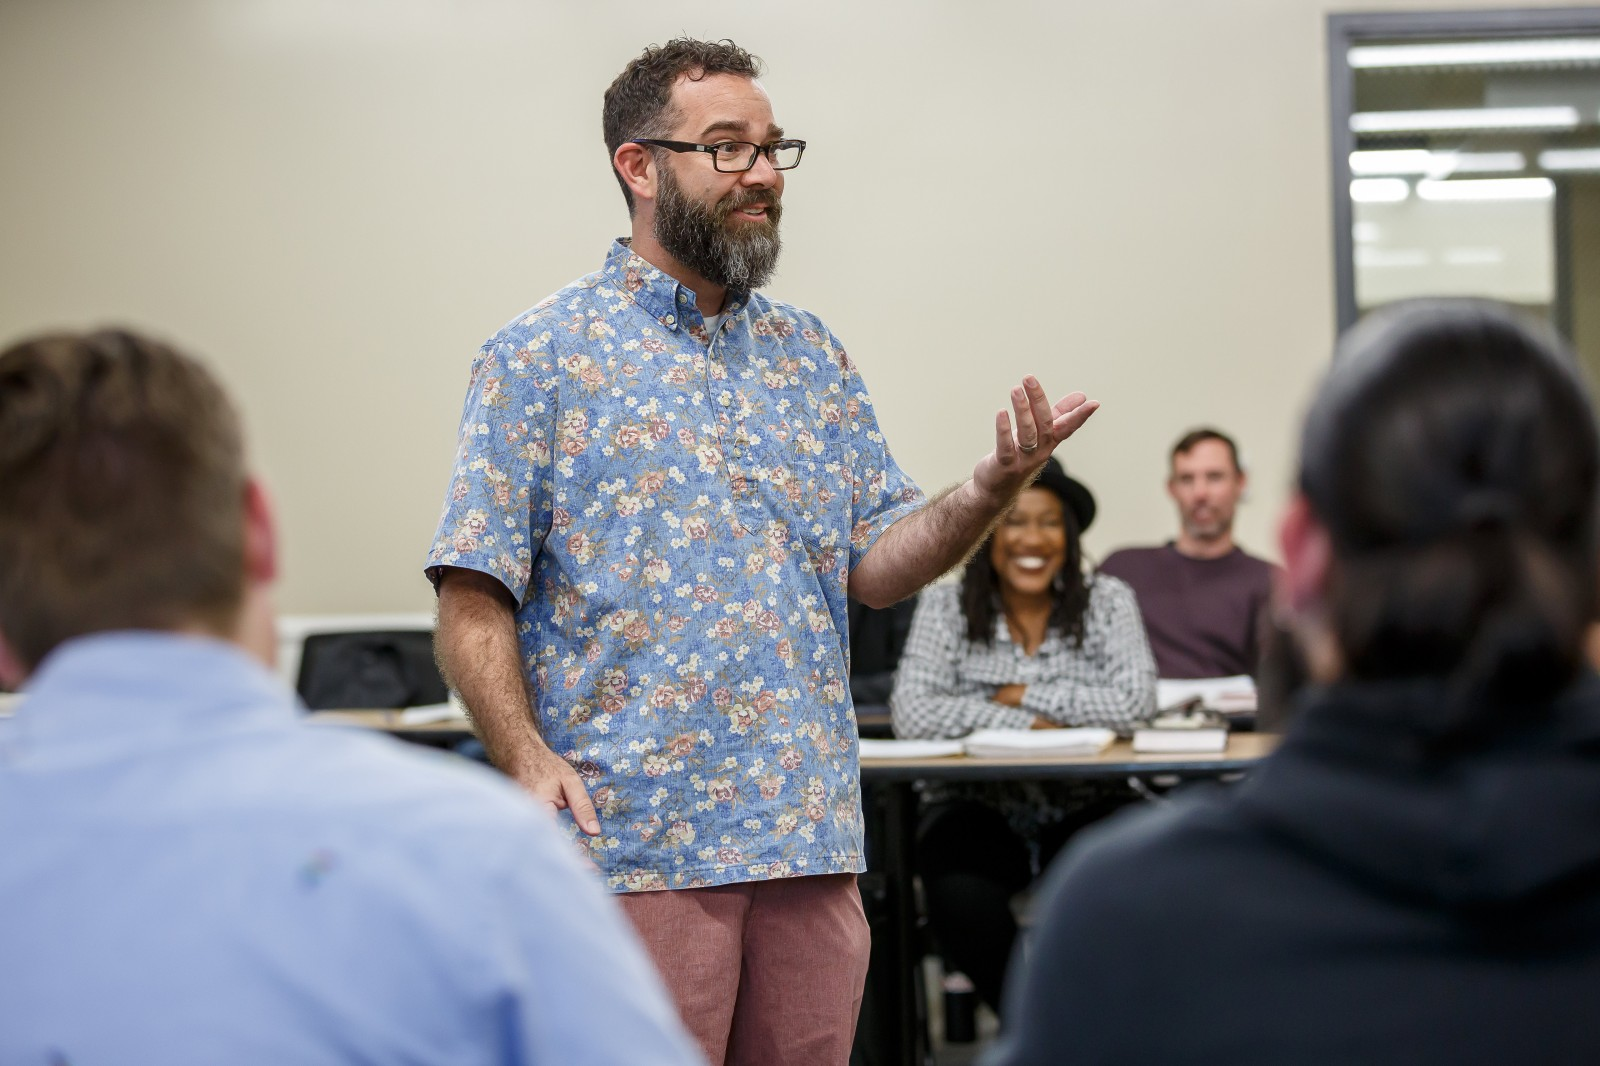 Like the regular Master of Divinity (M.Div.) program, the M.Div. with an emphasis in biblical studies prepares individuals for professional ministry in the Church, but with a heavier focus on biblical languages and other biblical topics.